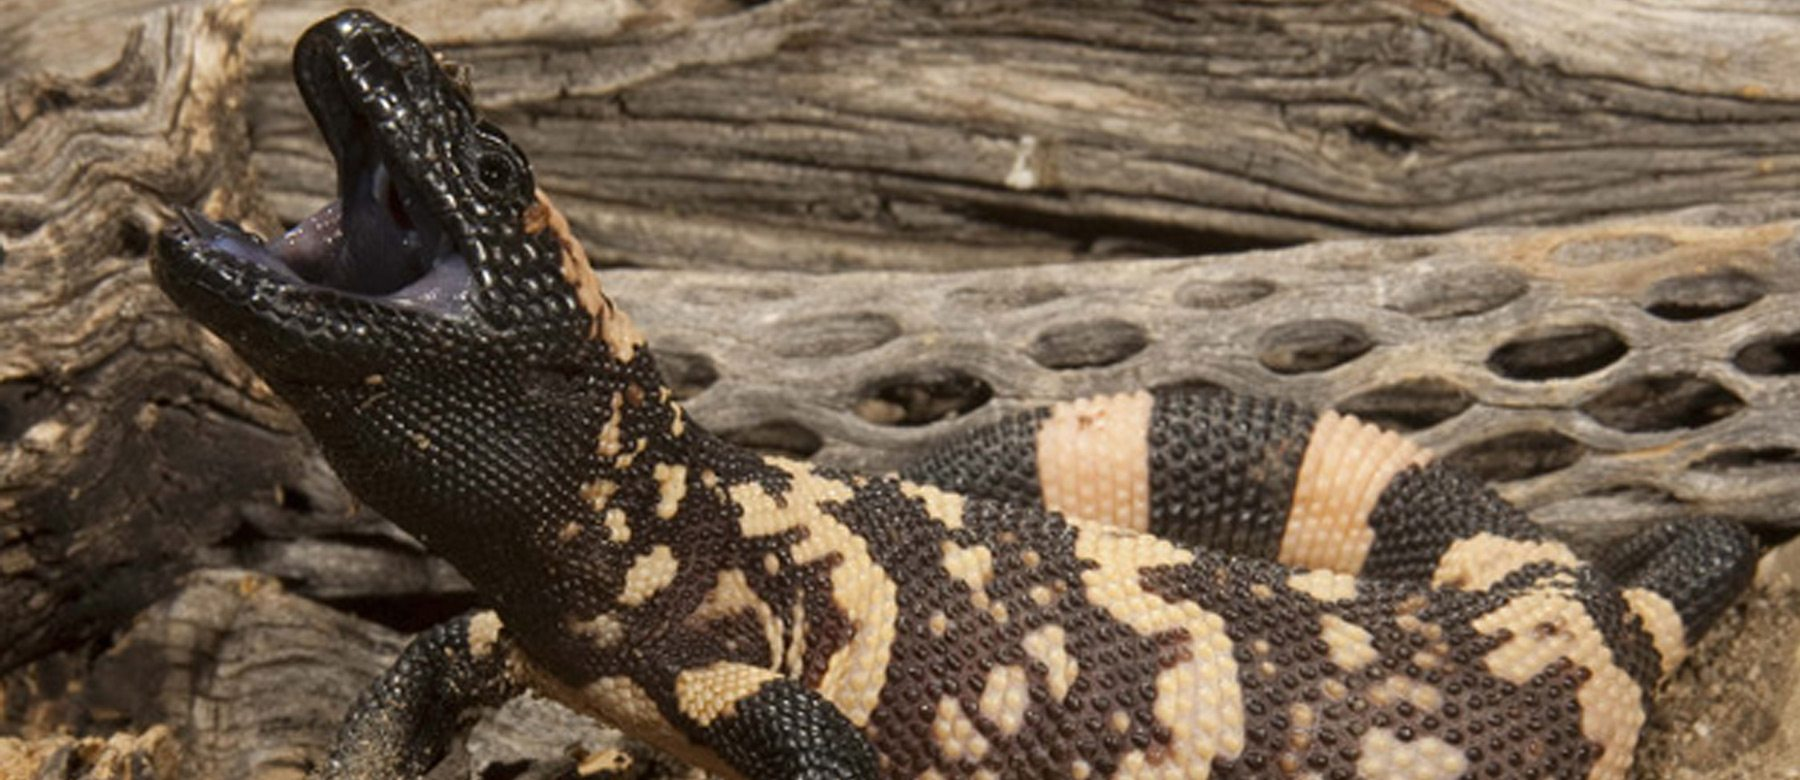 Feared and misunderstood: Reptiles. Interactive exhibit on now at Canadian Museum of Nature